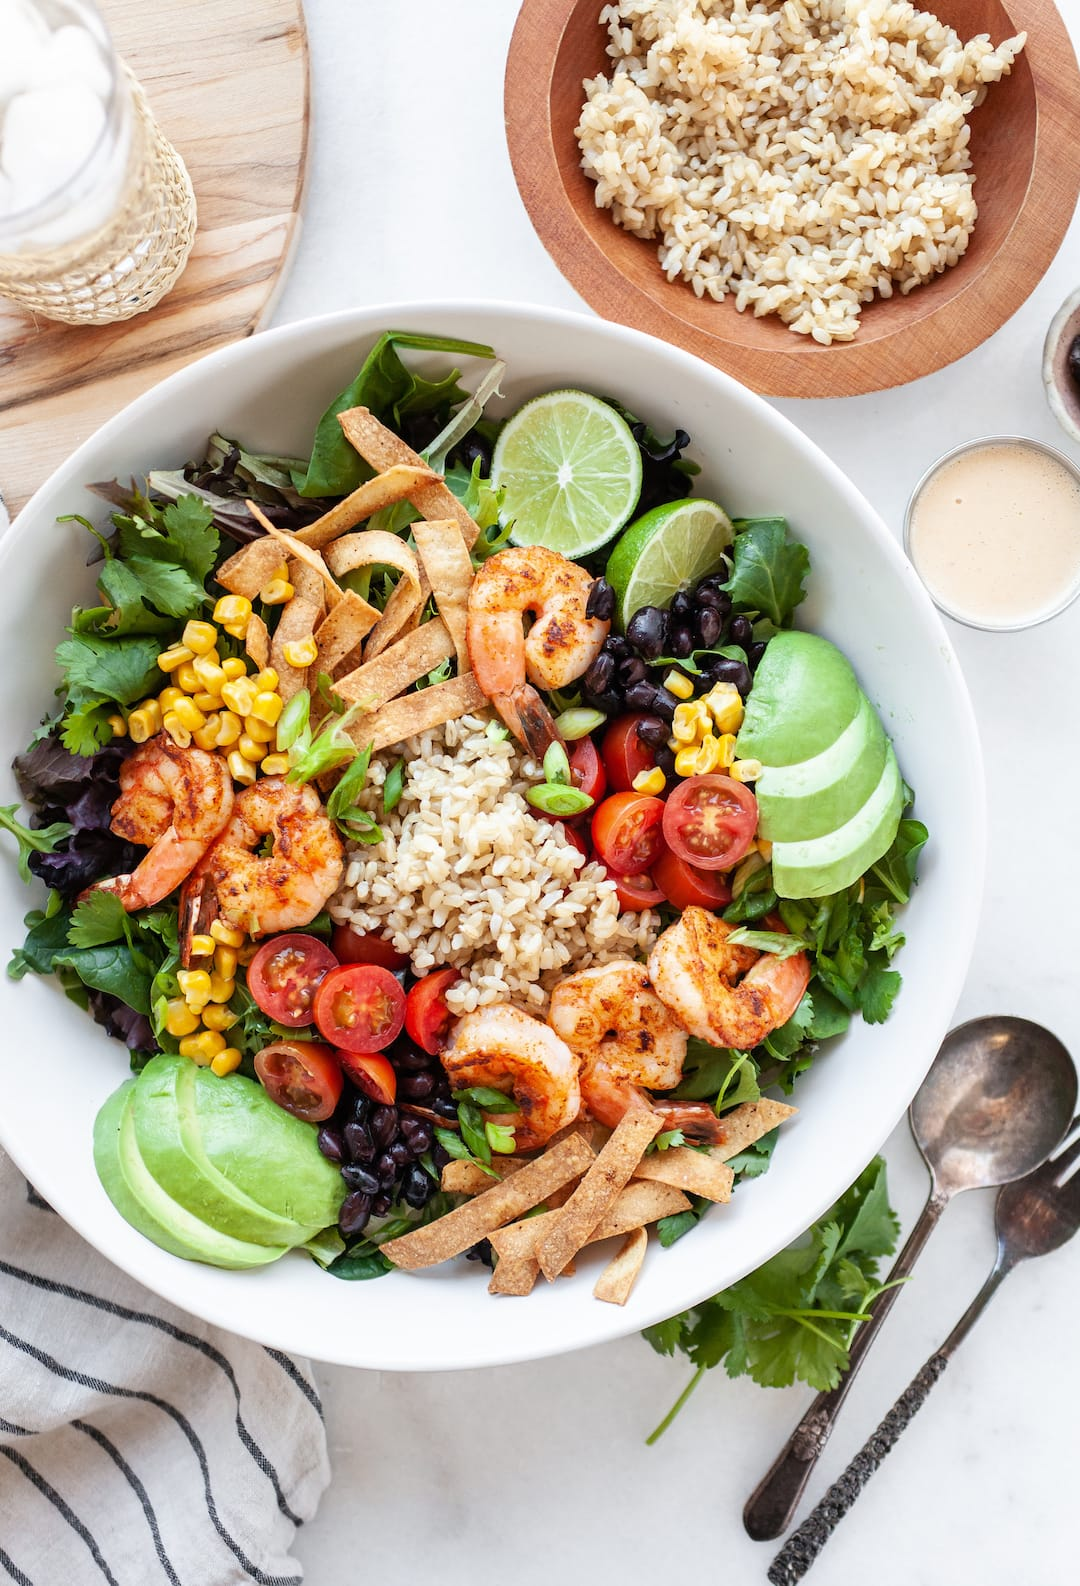 Healthy Southwest Salad in a bowl with rice, shrimp, avocado, beans and corn